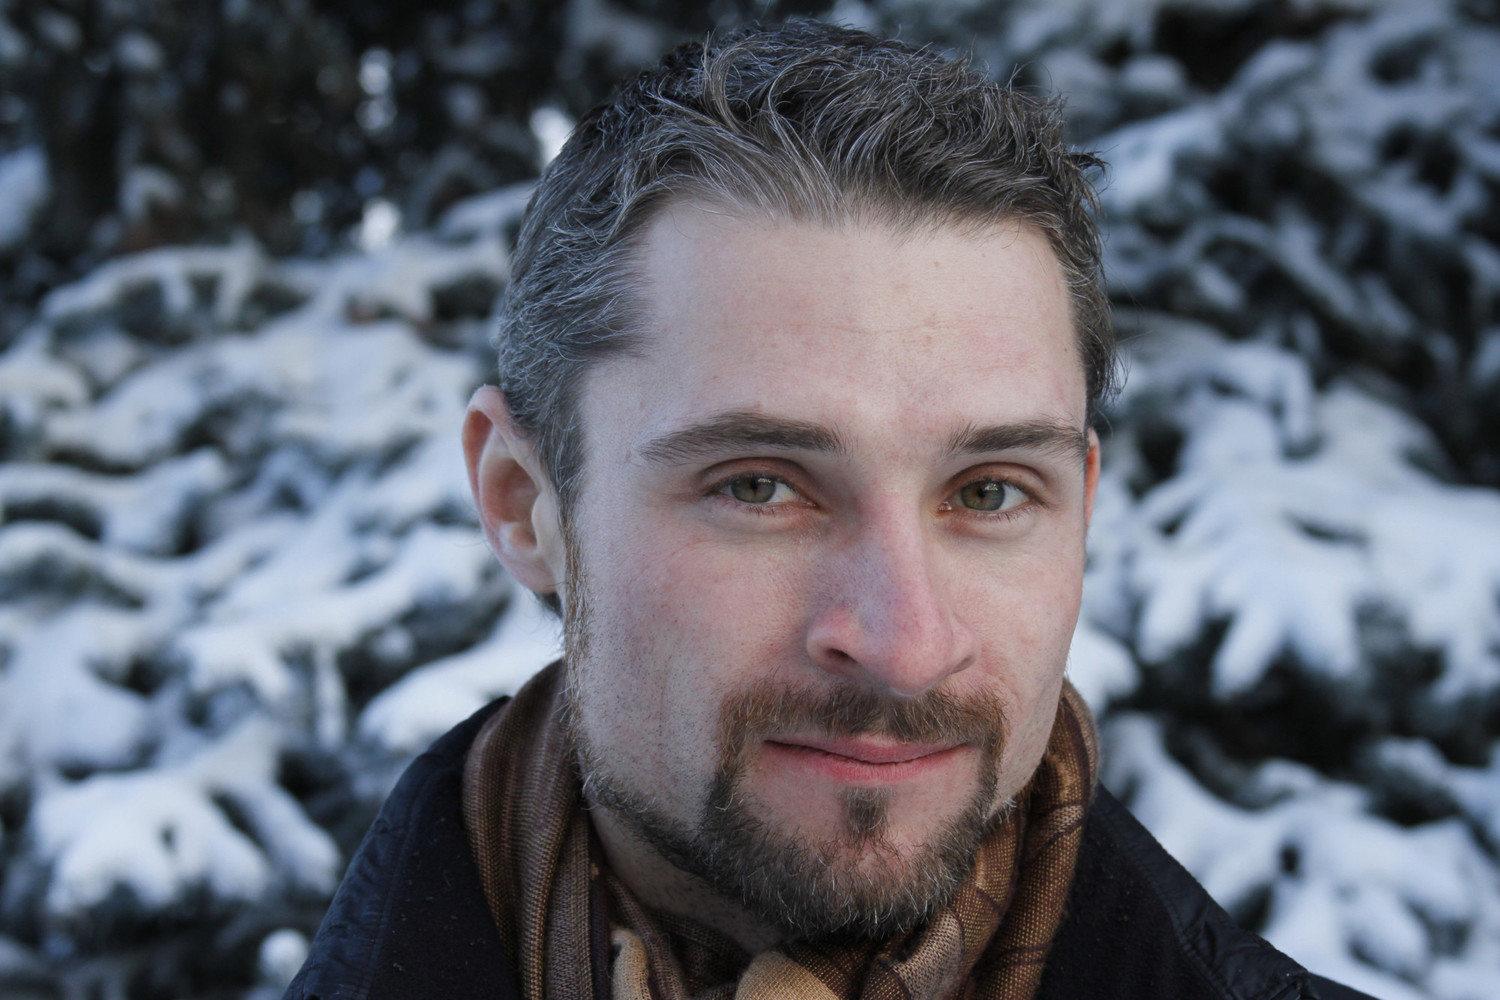 BWW Interview: With ART & CLASS, Popular Utah Playwright Launches New Season of Pioneer Theatre's Play-Development Series